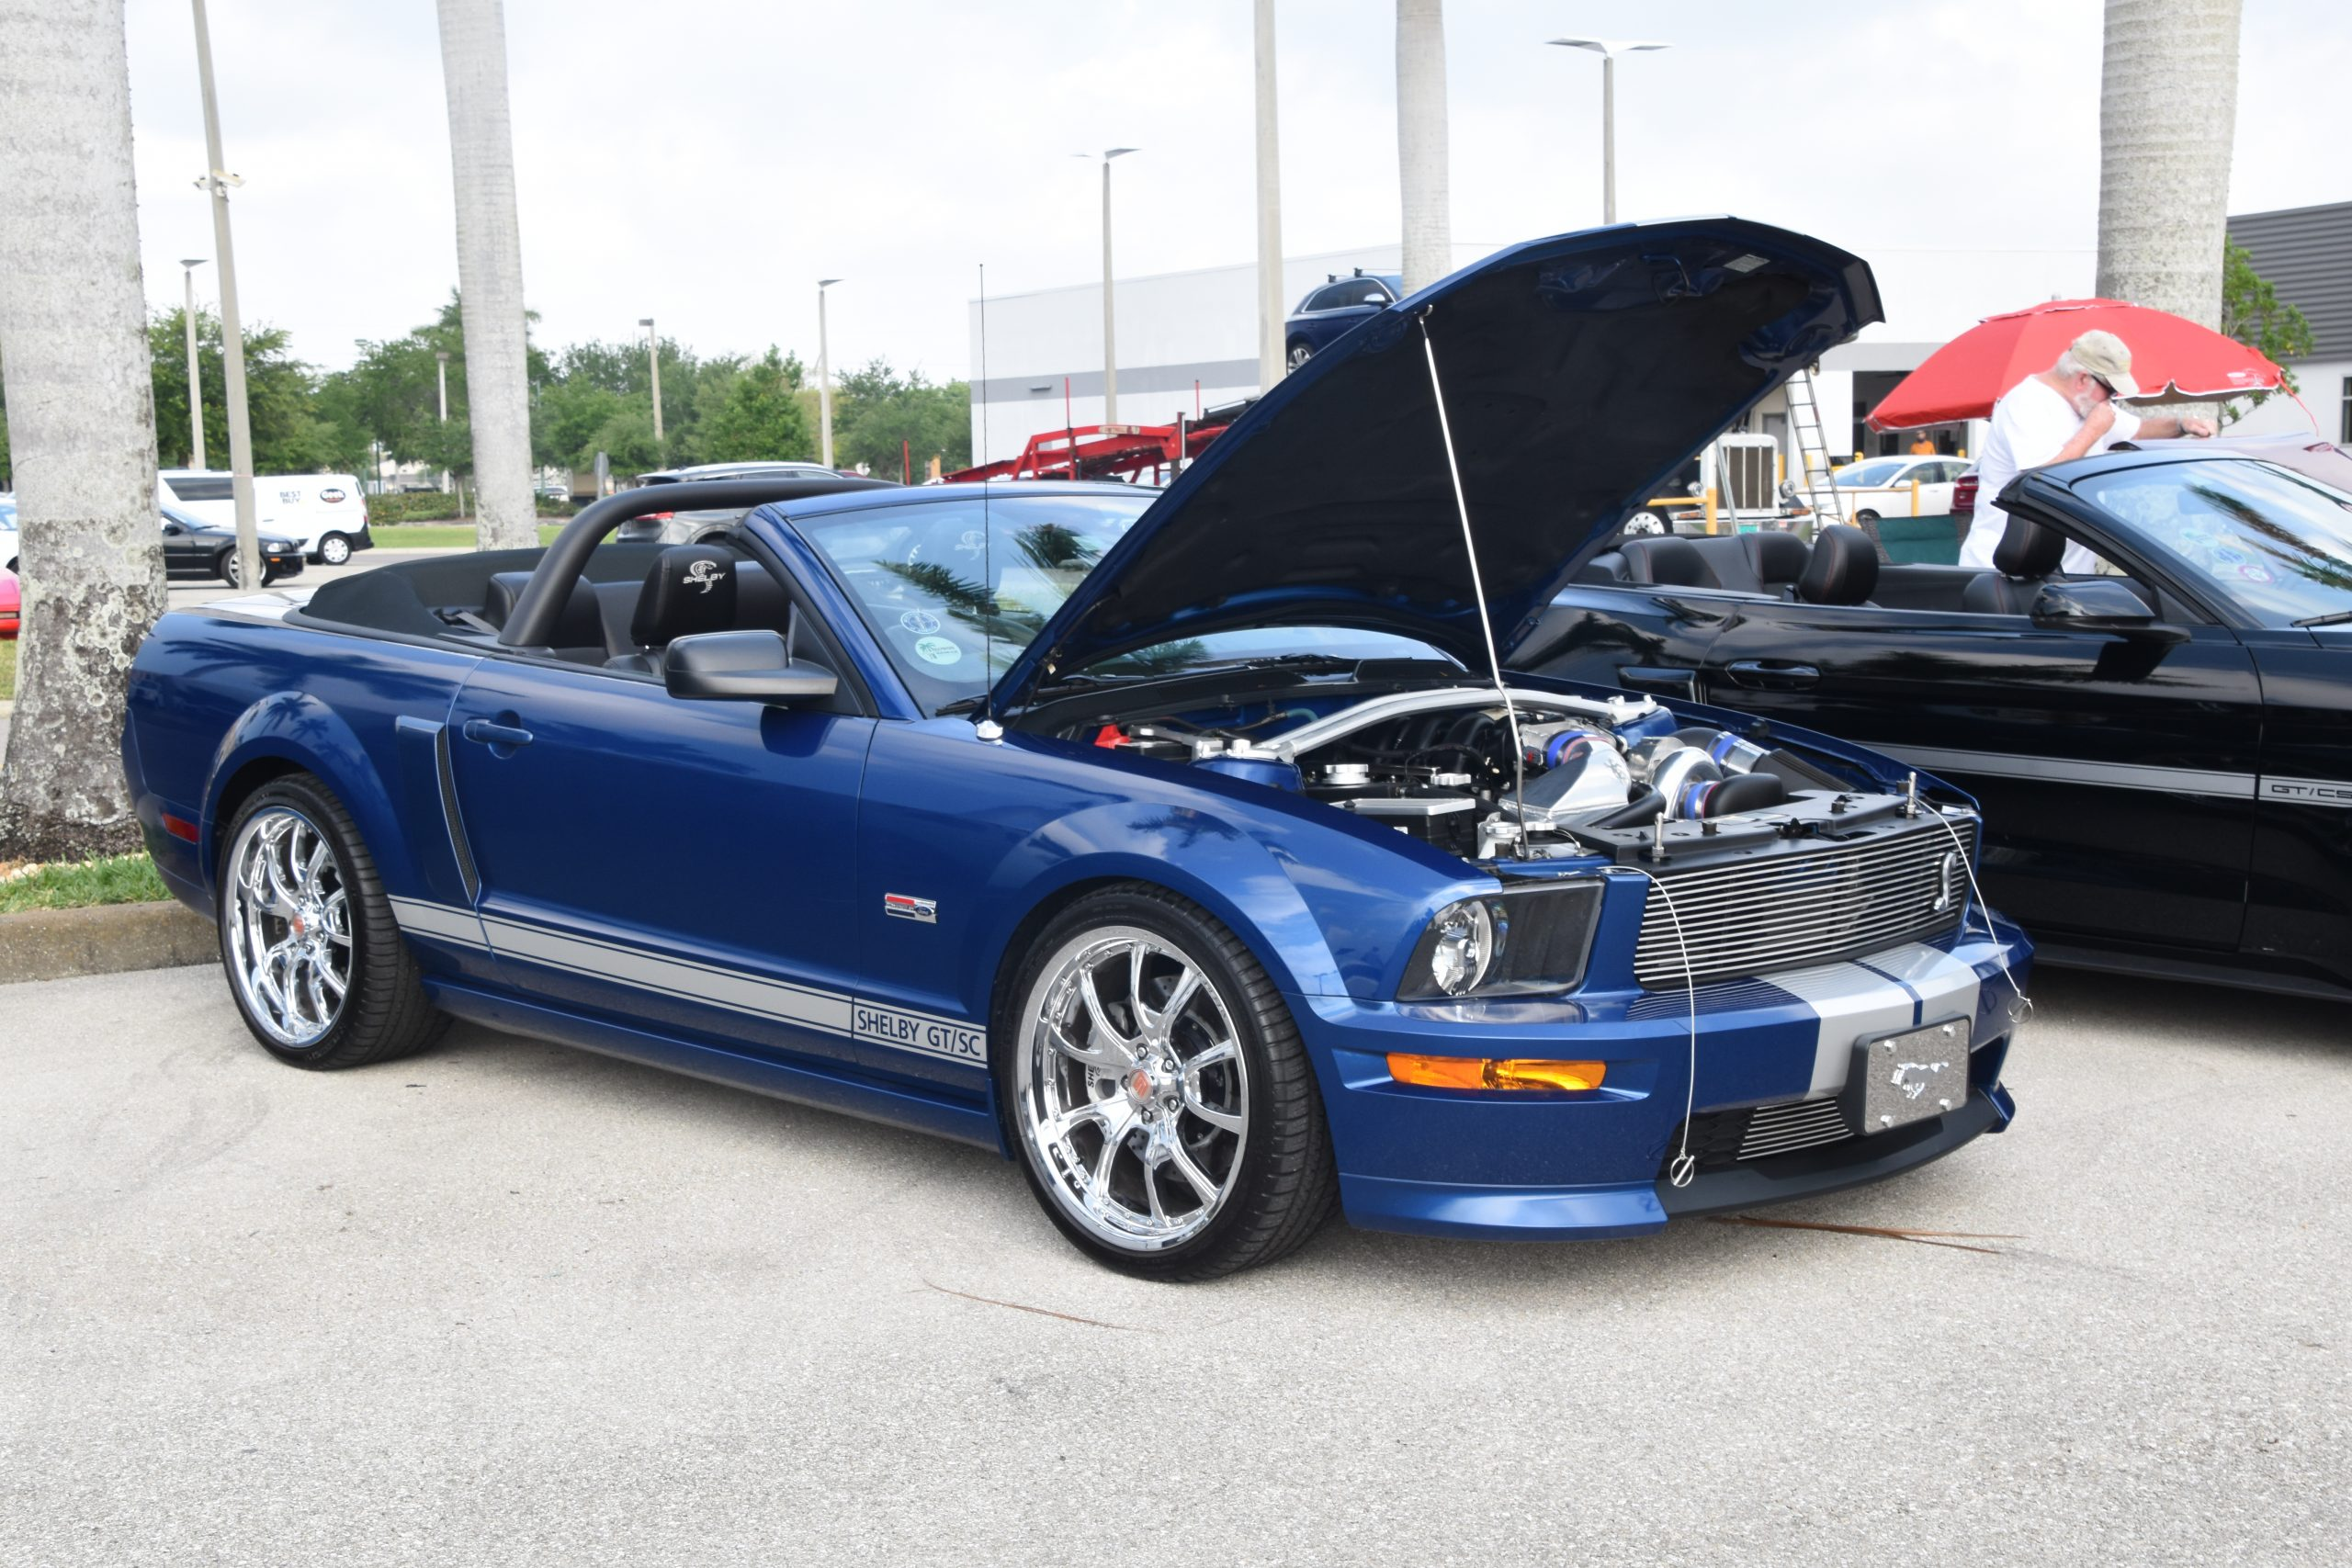 Blue Shelby Musgang with hood up at Car show